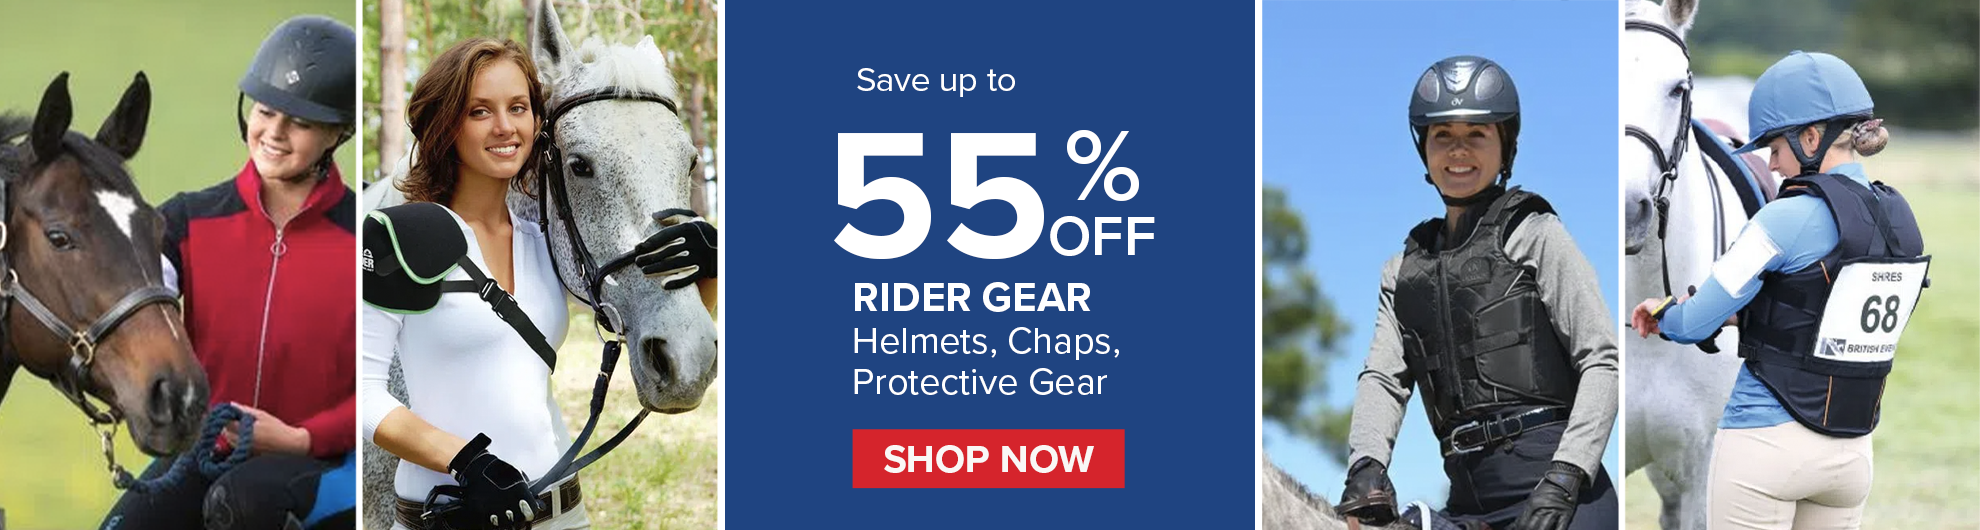 Rider Gear and Helmets, Chaps, Spurs